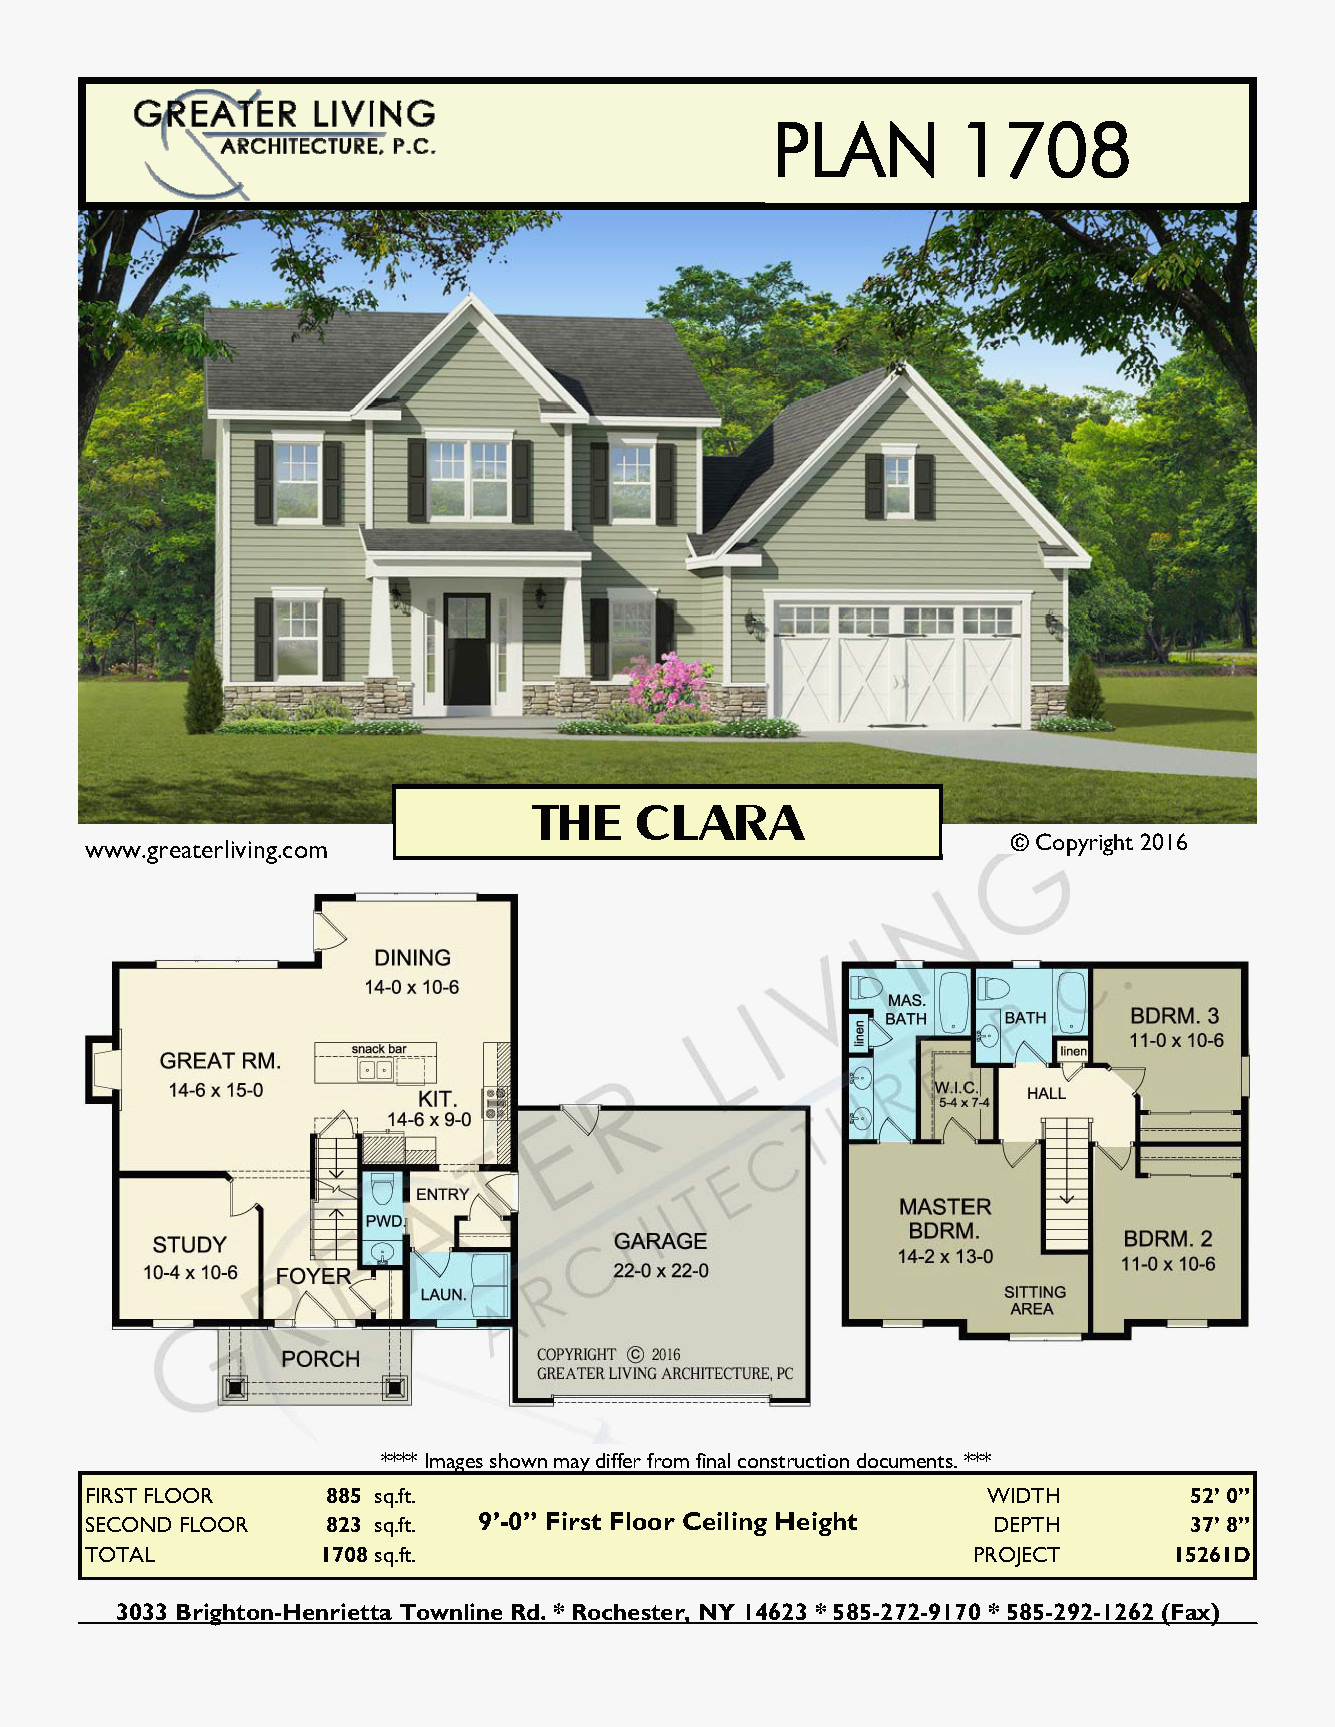 modern family floor plans unique plan 1708 the clara two story house plan greater living architecture residential